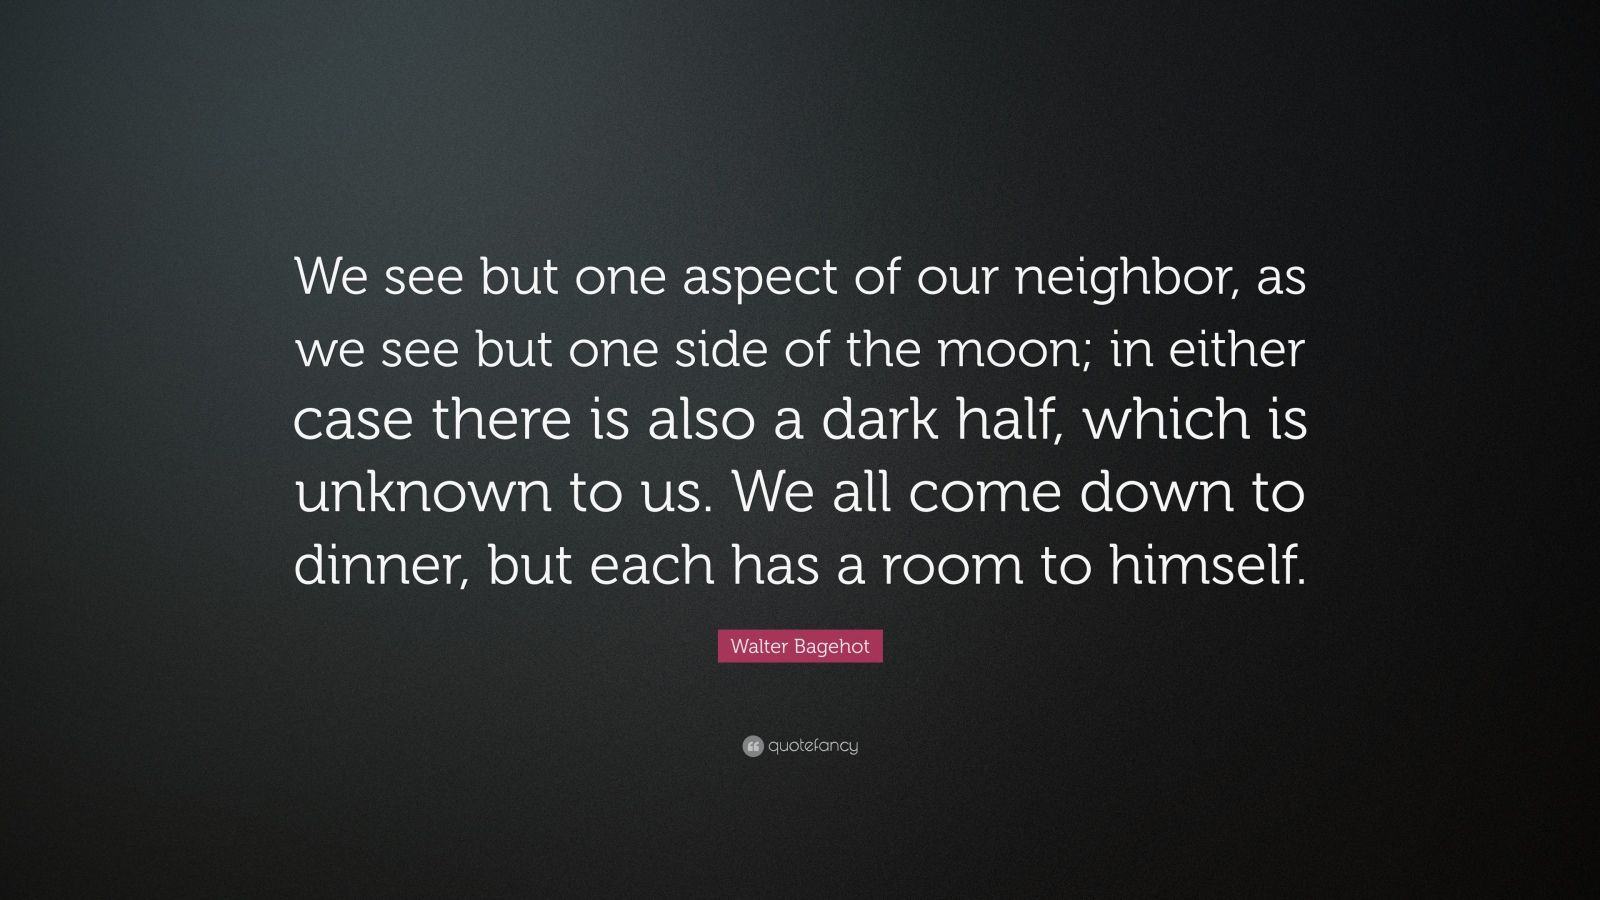 """Walter Bagehot Quote: """"We see but one aspect of our neighbor, as we see but one side of the moon; in either case there is also a dark half, which is unknown to us. We all come down to dinner, but each has a room to himself."""""""